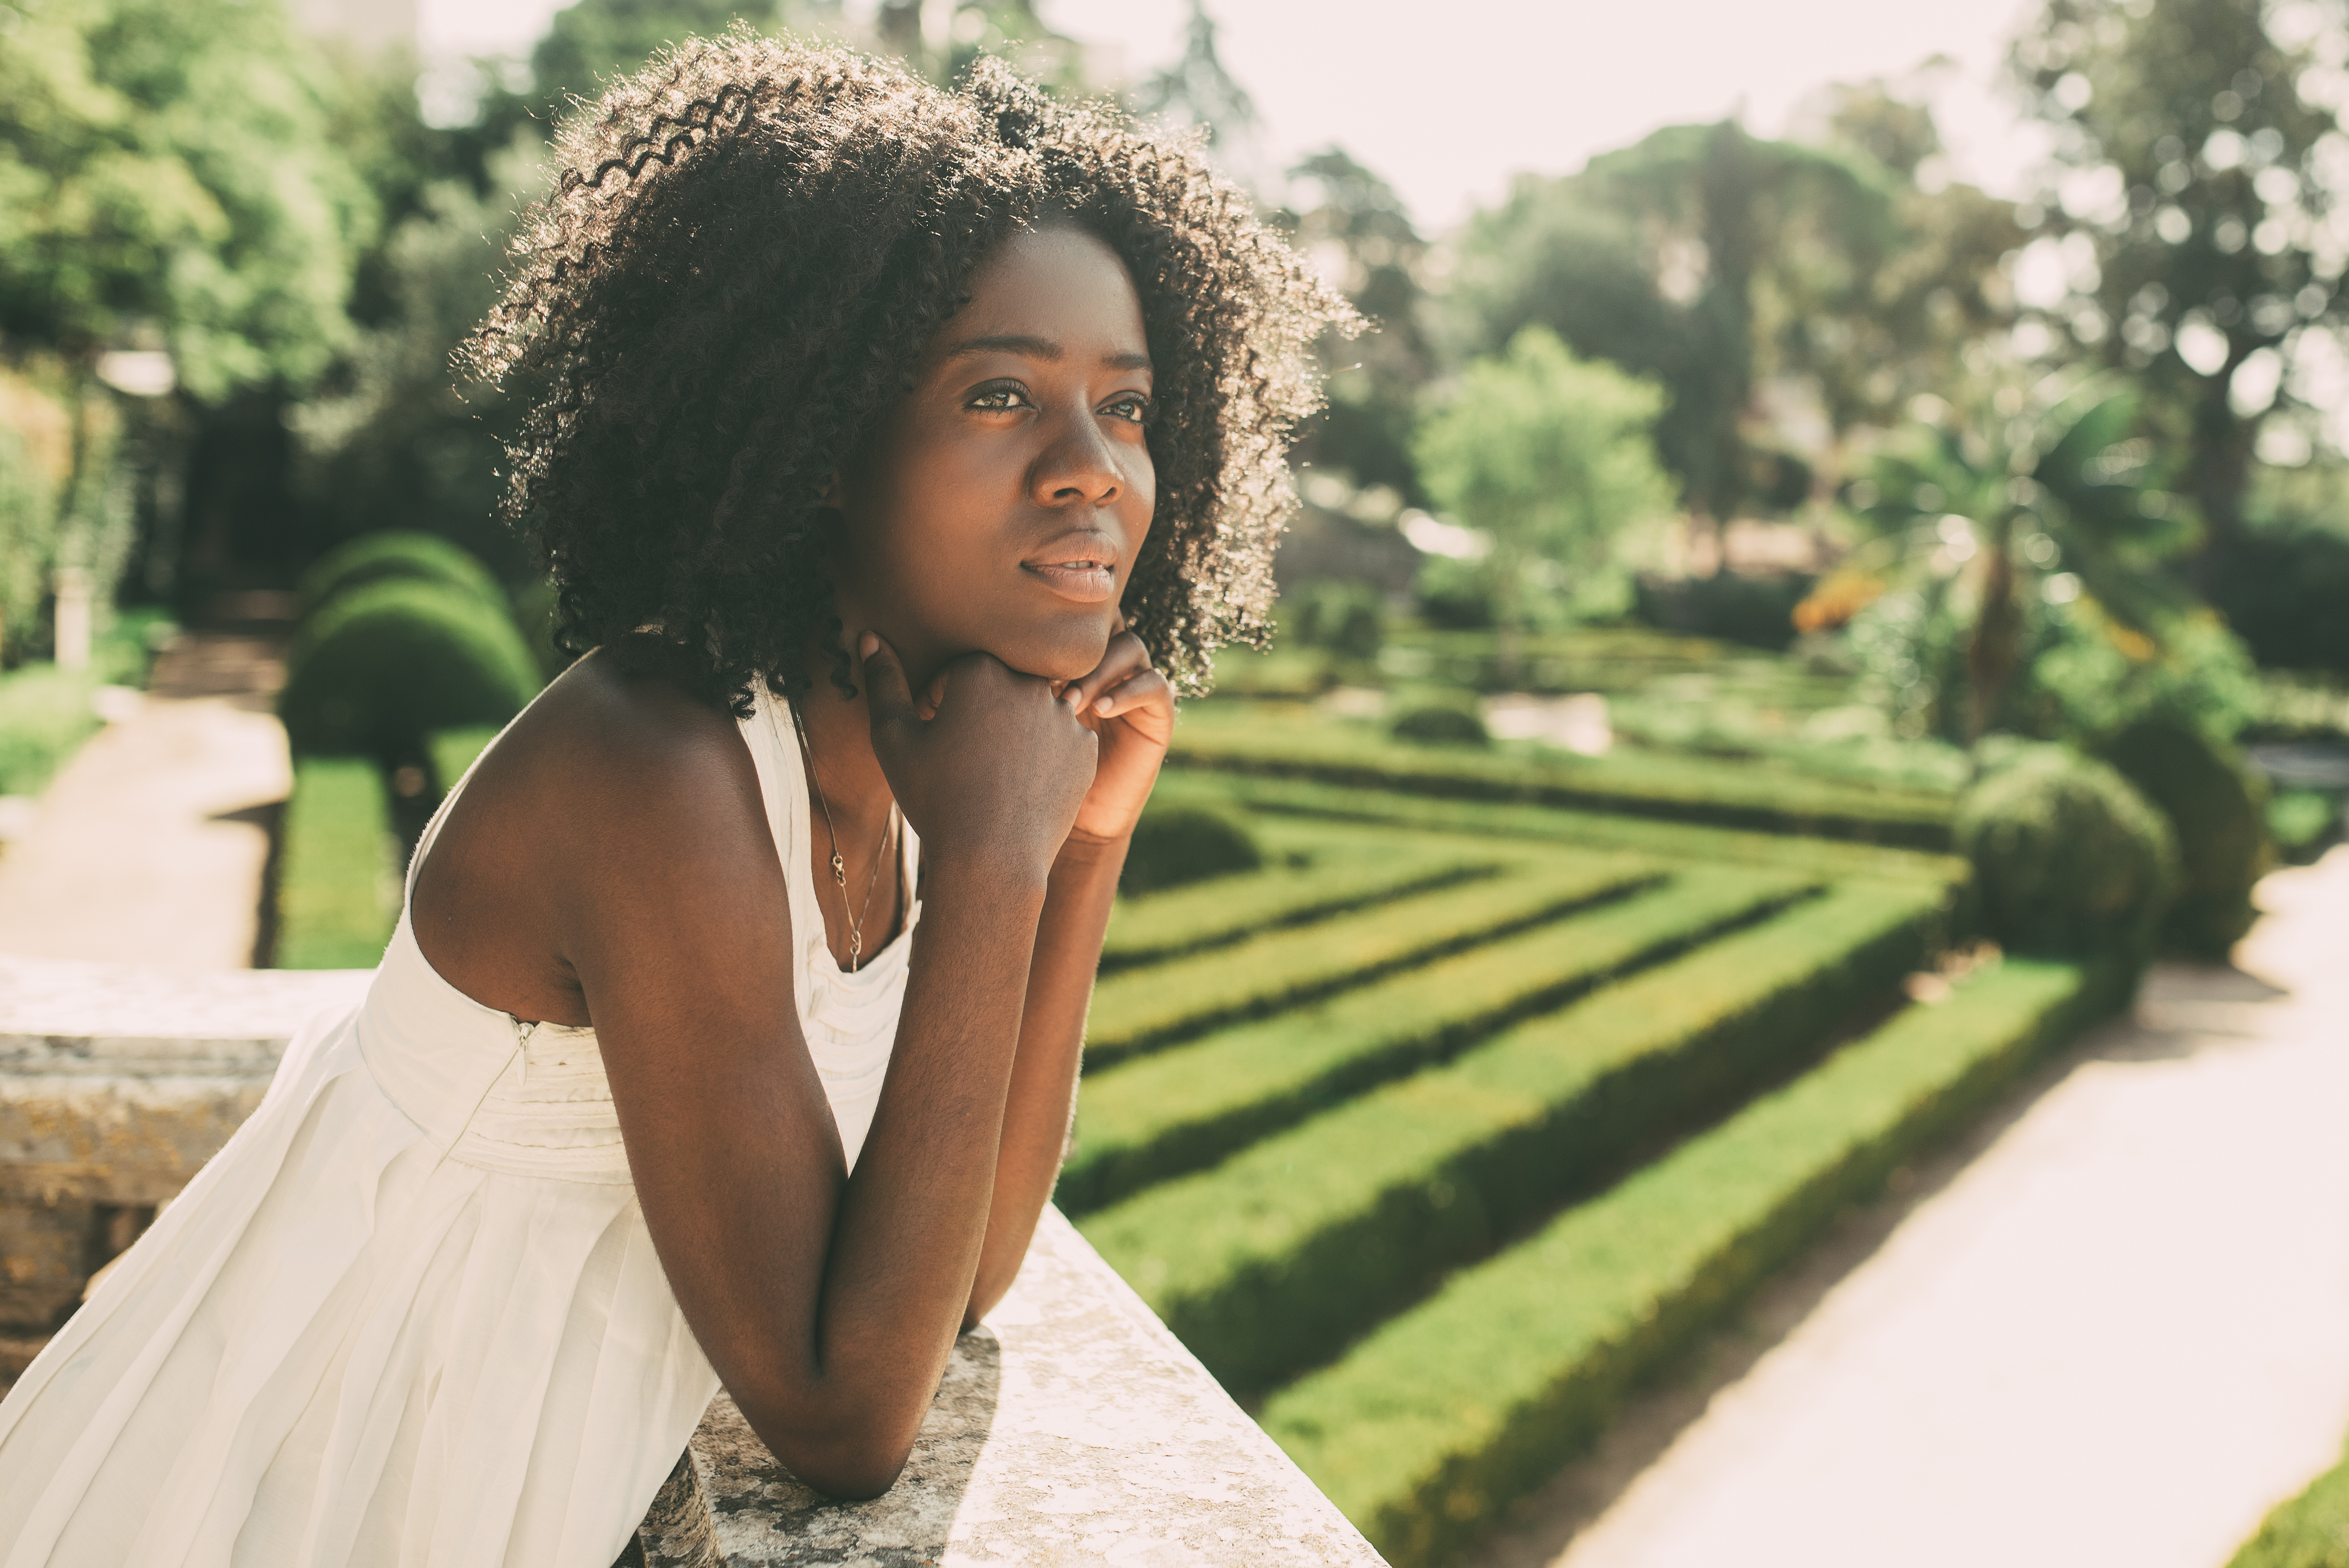 Combatting Anxiety: 3 Ways to Use Mindfulness When Starting the New Year